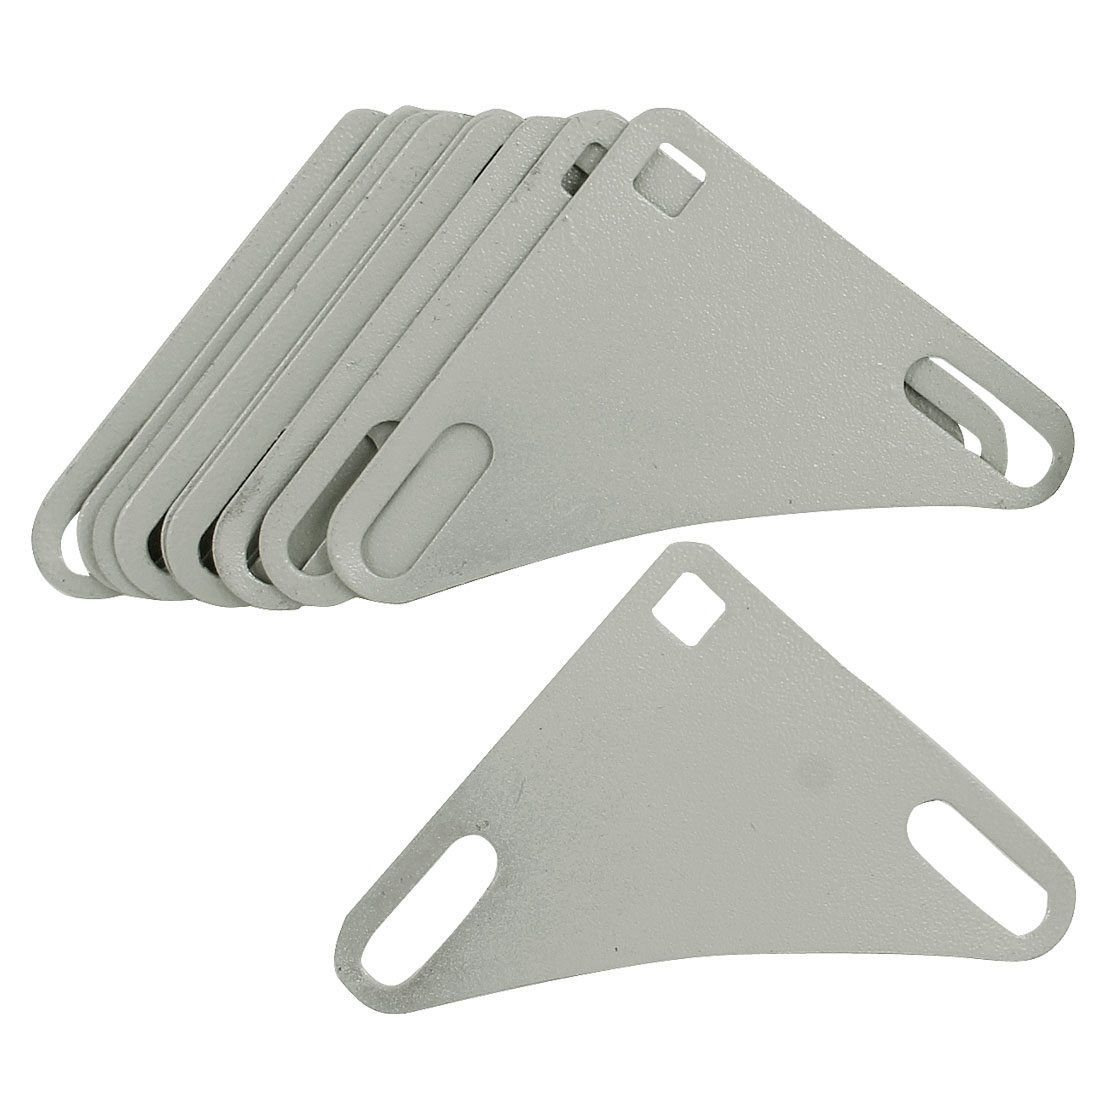 10 Pcs Metal Angle Iron Shelves Triangle Bracket Gasket